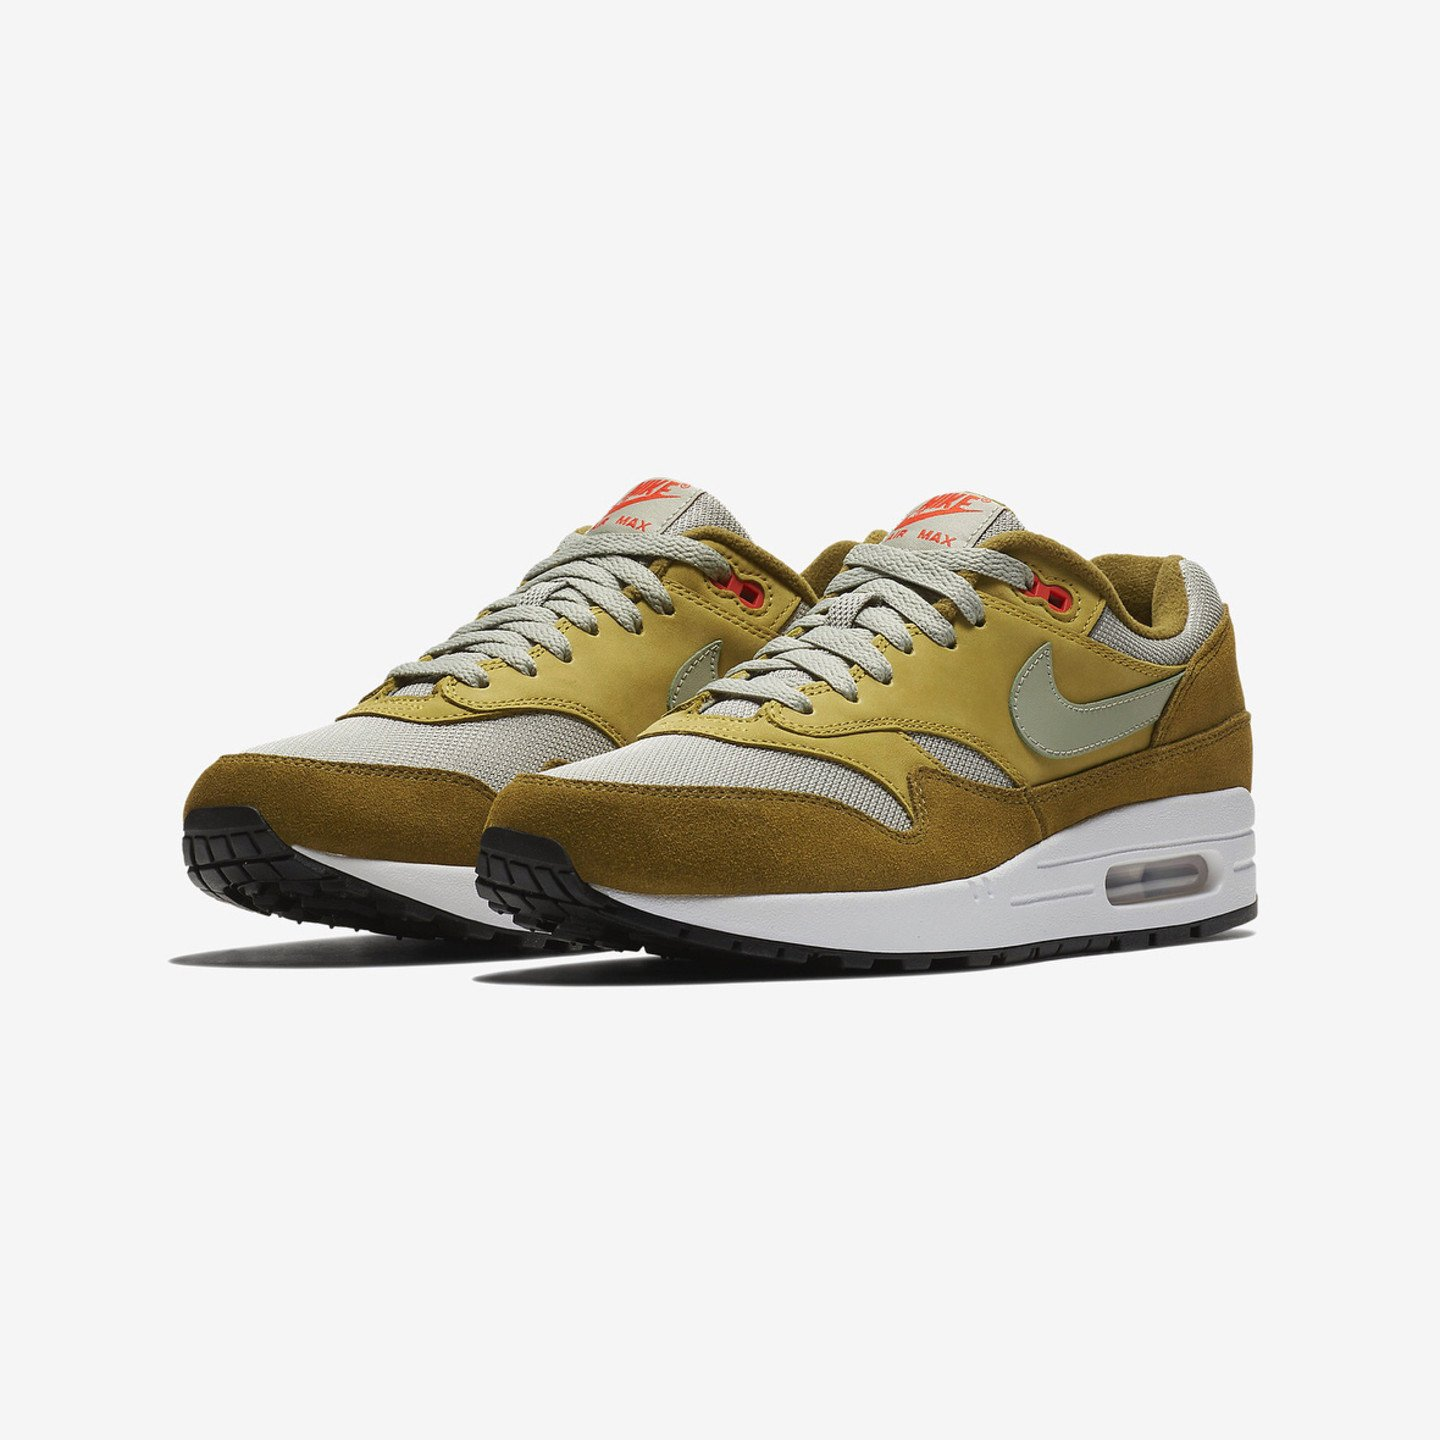 Nike Air Max 1 Premium Atmos 'Green Curry' Olive Flak / Spruce Fog / Peat Moss 908366-300